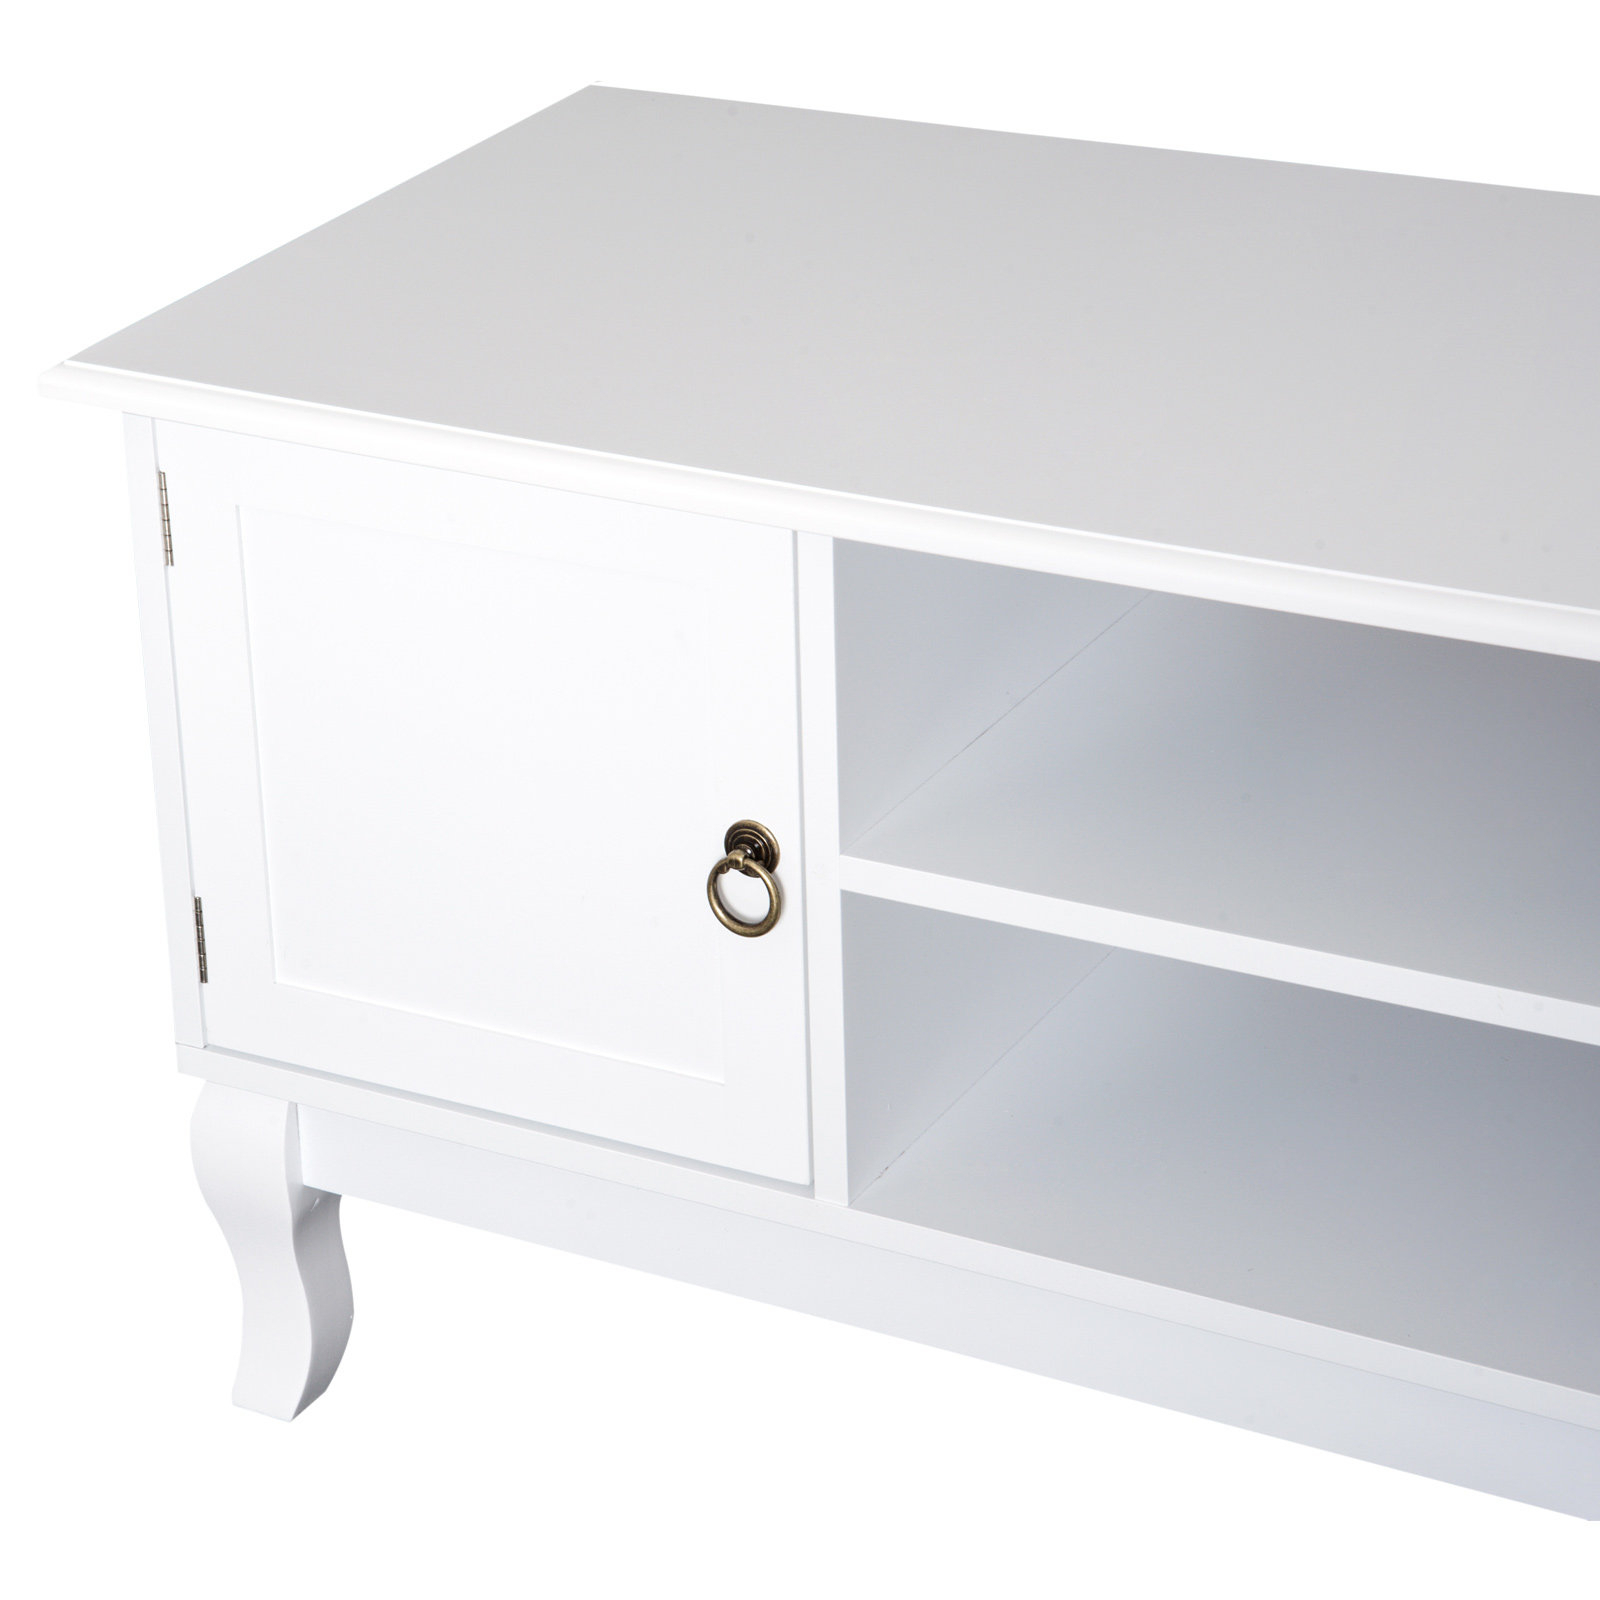 Homcom Tv Stand Unit Corner Table Modern Eco Friendly Mdf Throughout Compton Ivory Corner Tv Stands (View 15 of 20)